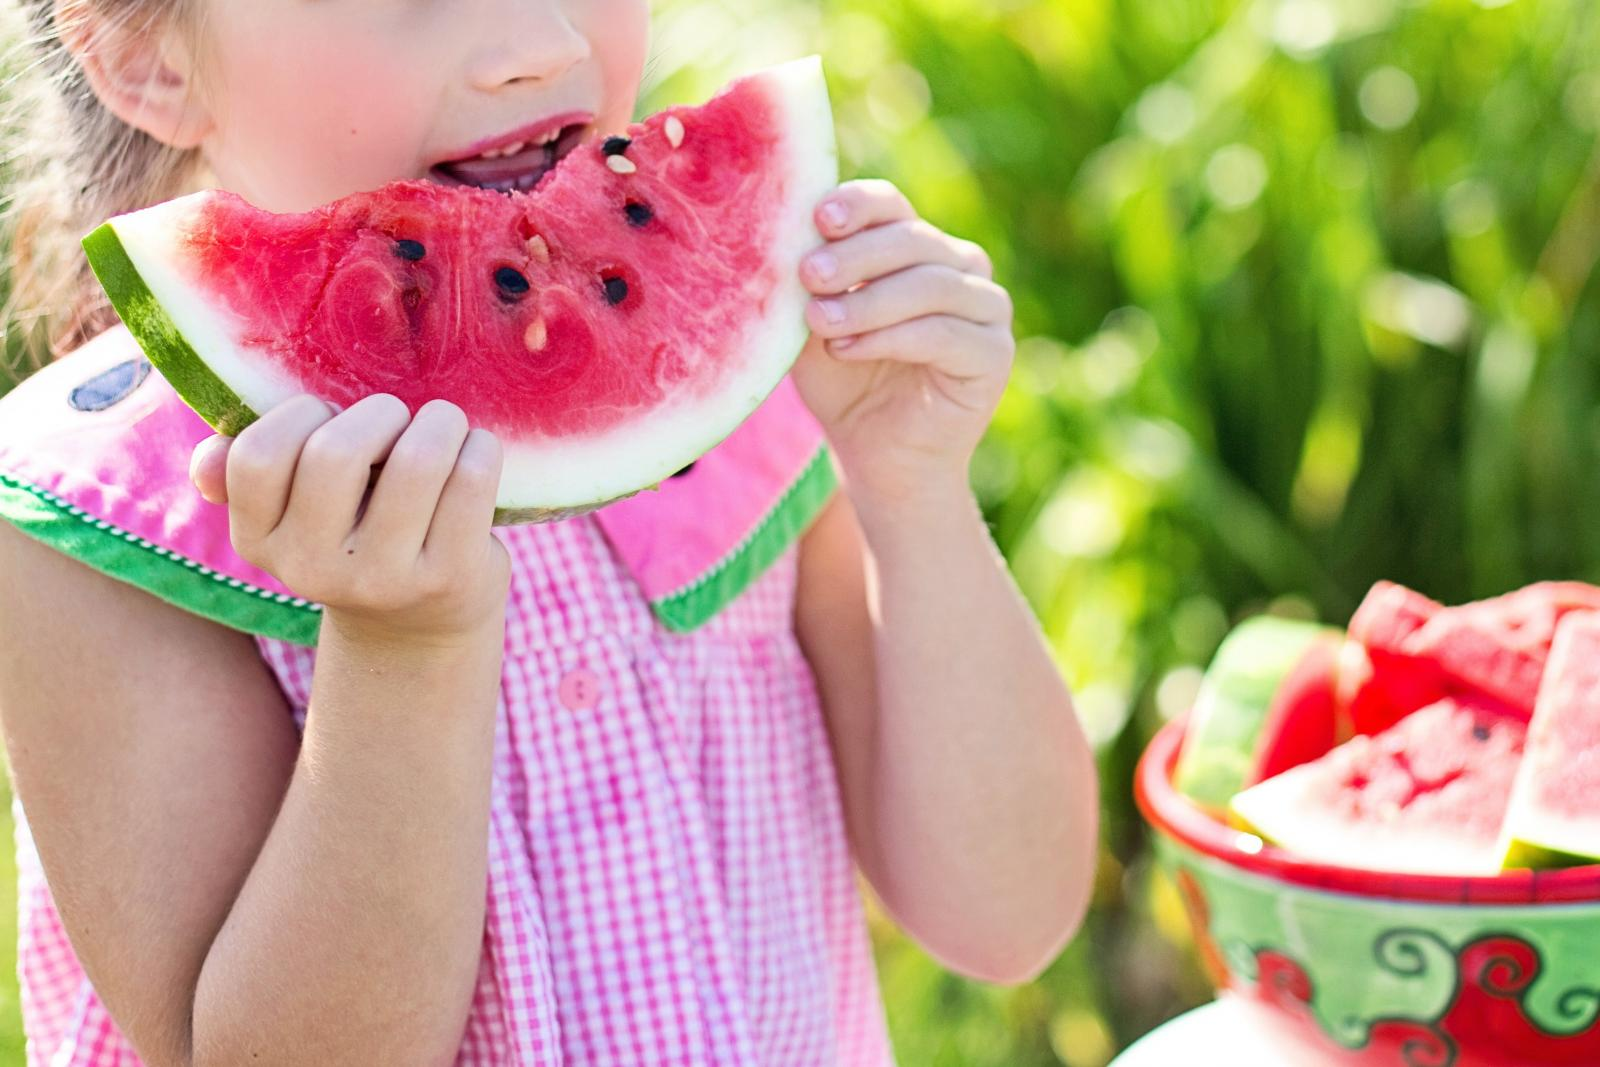 Child eating a watermelon. Photo credit: Pexels